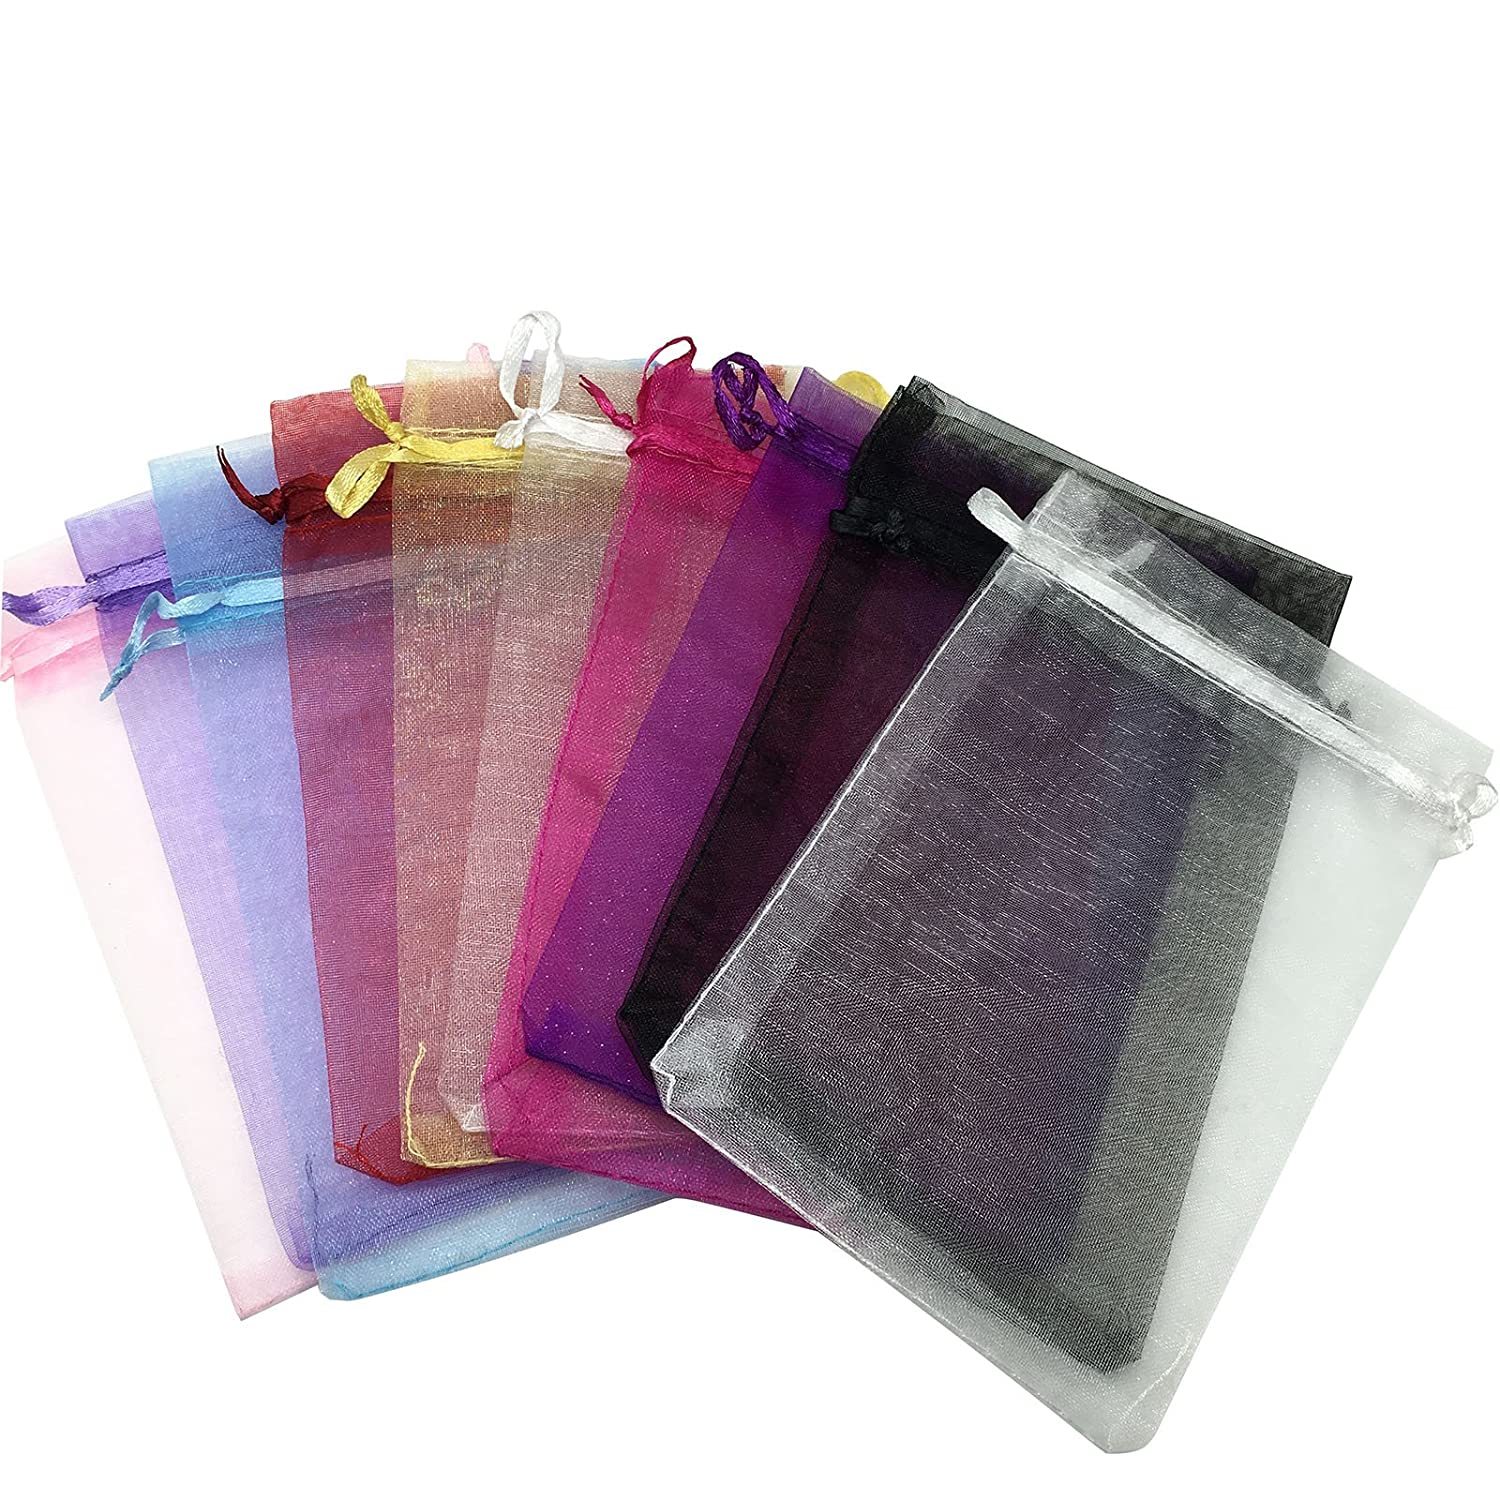 SOSAM 100 Organza Mixed Colors Jewelry Pouch Bags Display (4 X 5 Inches) IS09